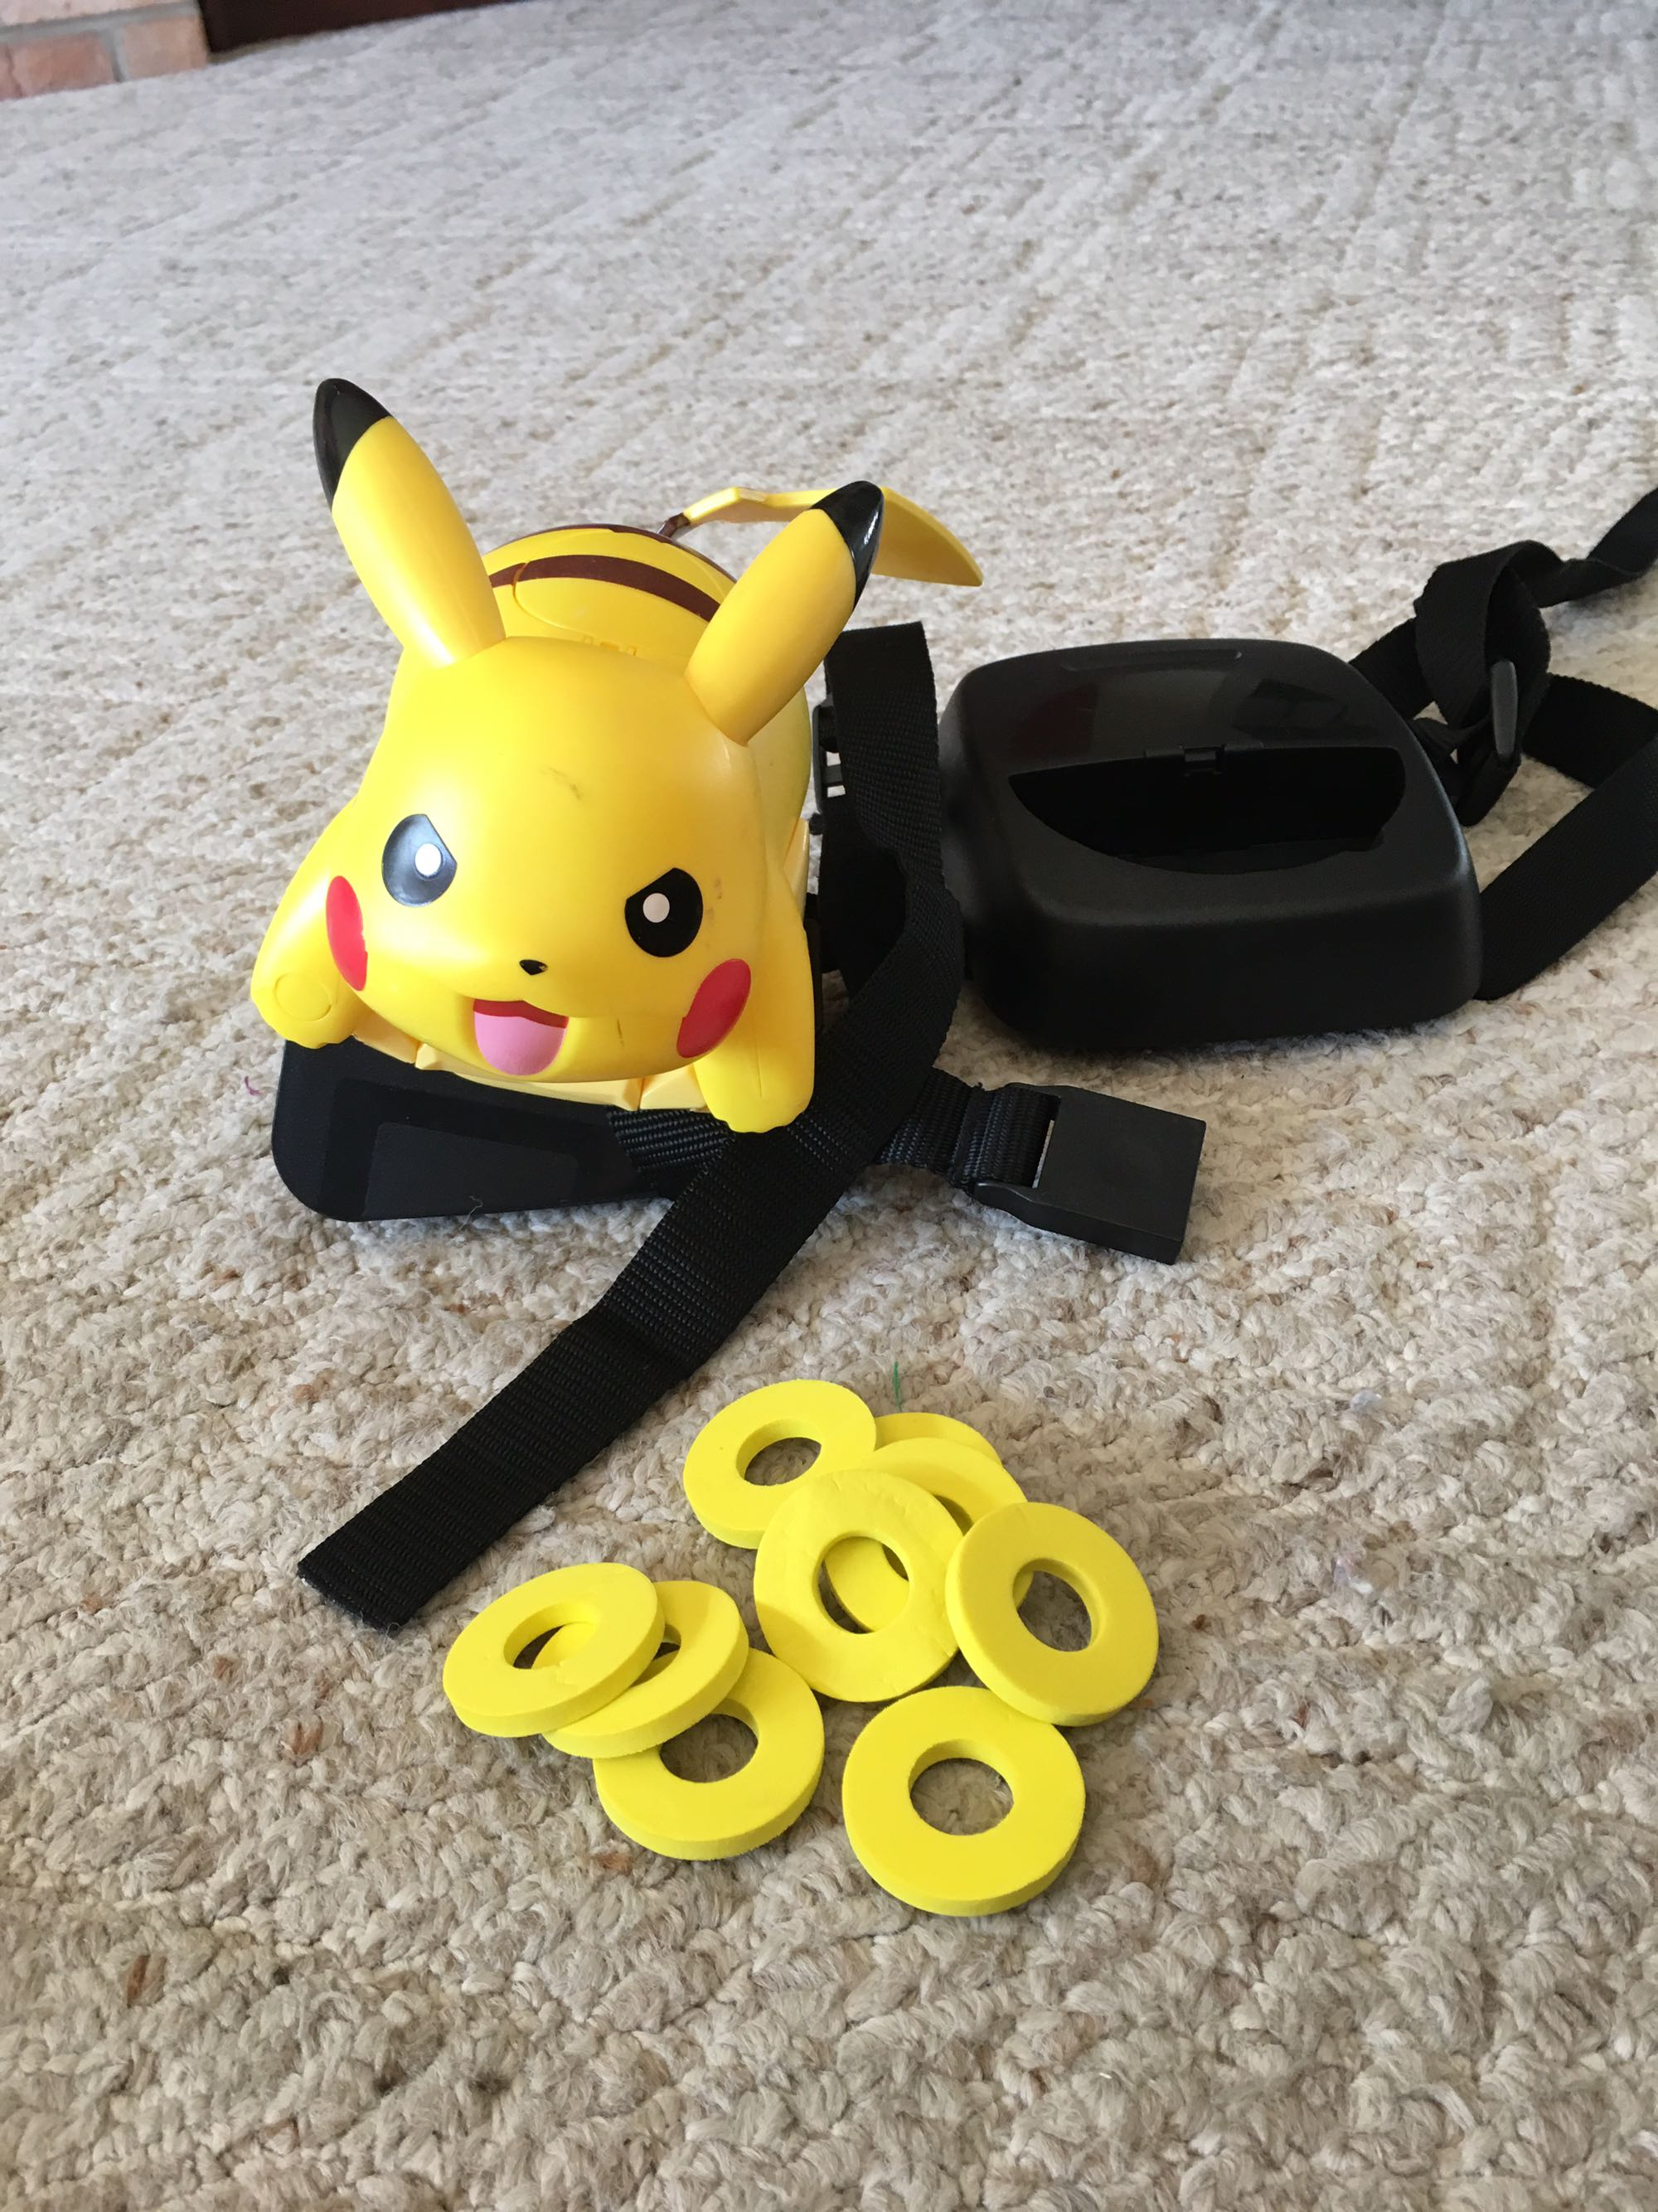 Pikachu wearable action figure